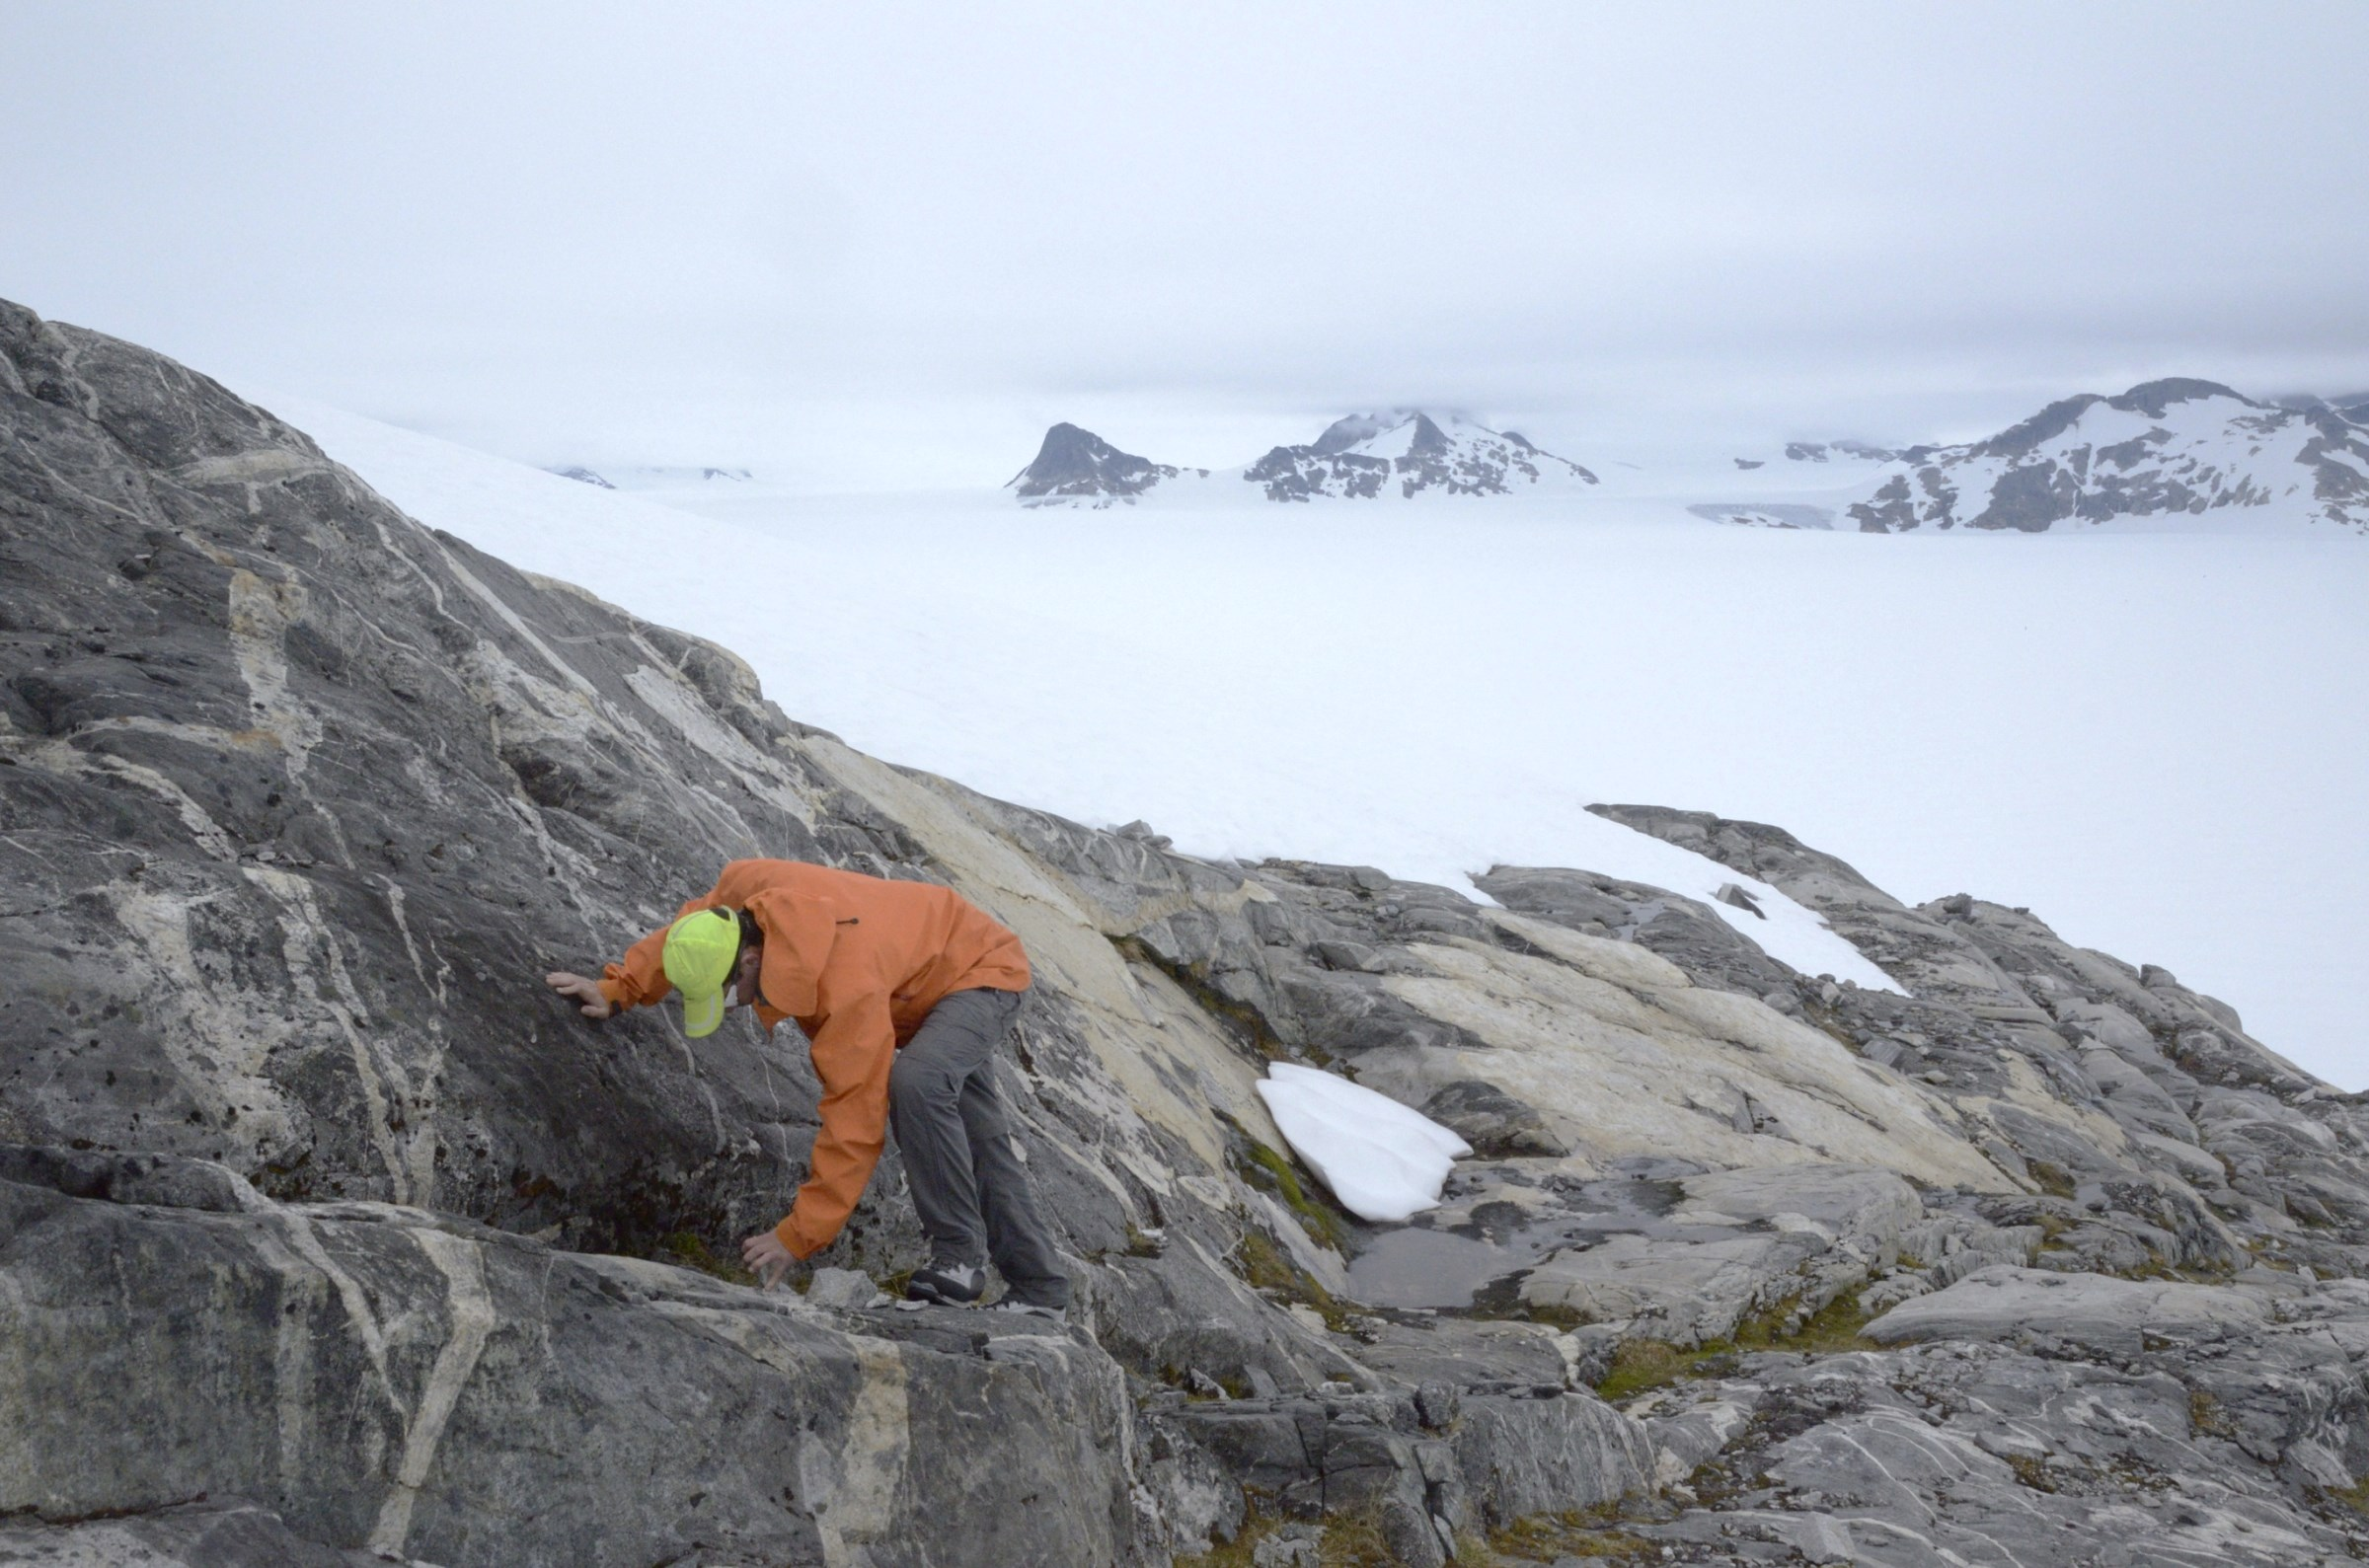 Ben Slavin collecting at Shoehorn Mountain, across the main branch of Taku Glacier from Camp 10.  Photo by Jeffrey Kavanaugh.